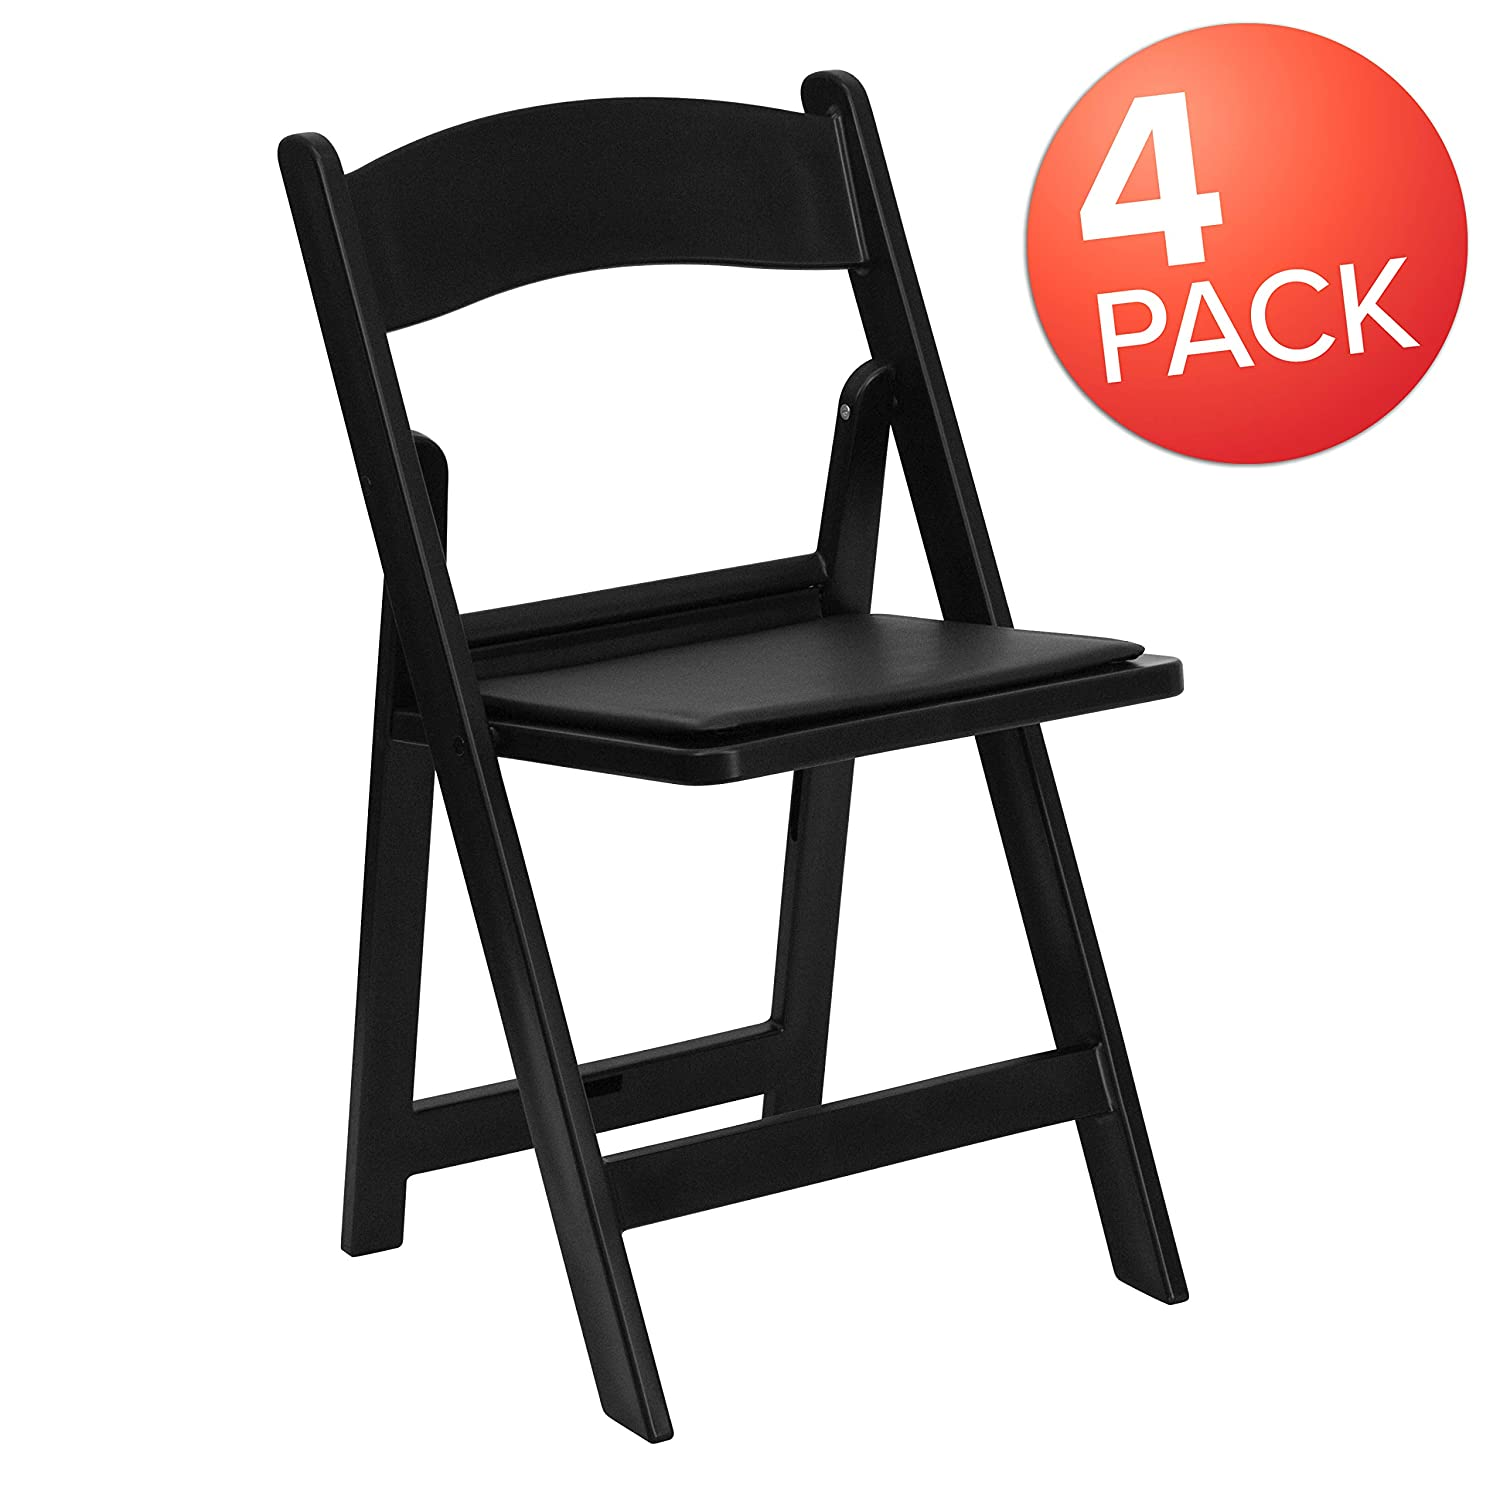 Flash Furniture 4 Pk. HERCULES Series 1000 lb. Capacity Black Resin Folding Chair with Black Vinyl Padded Seat